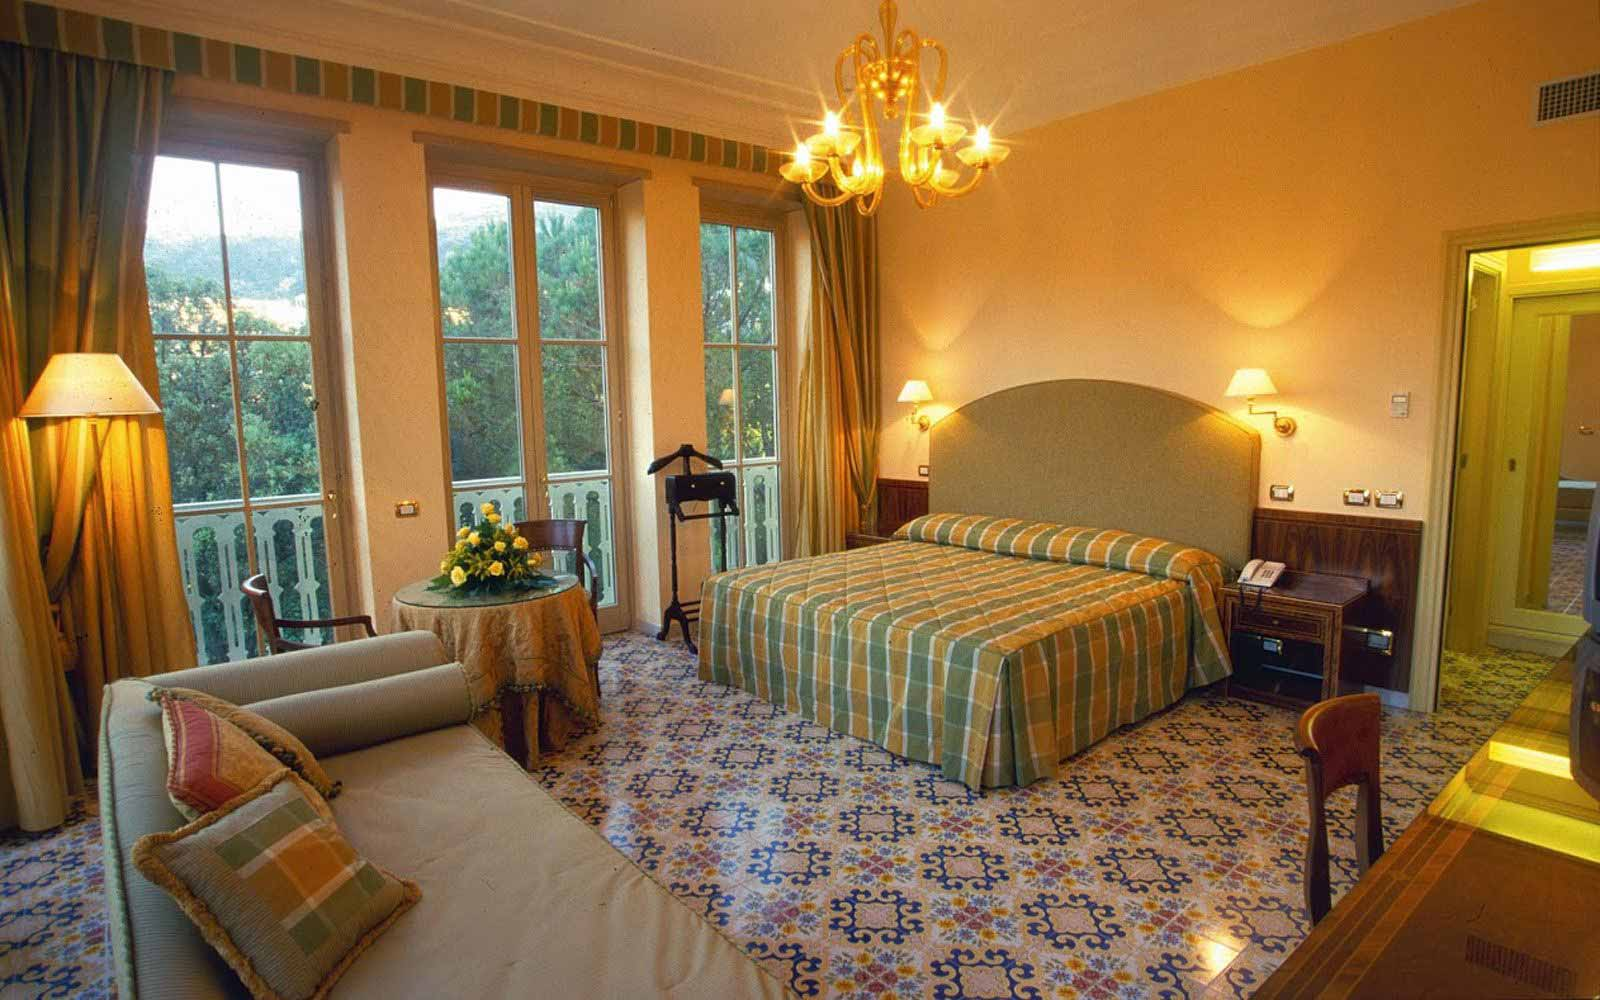 Junior suite at Hotel Antiche Mura